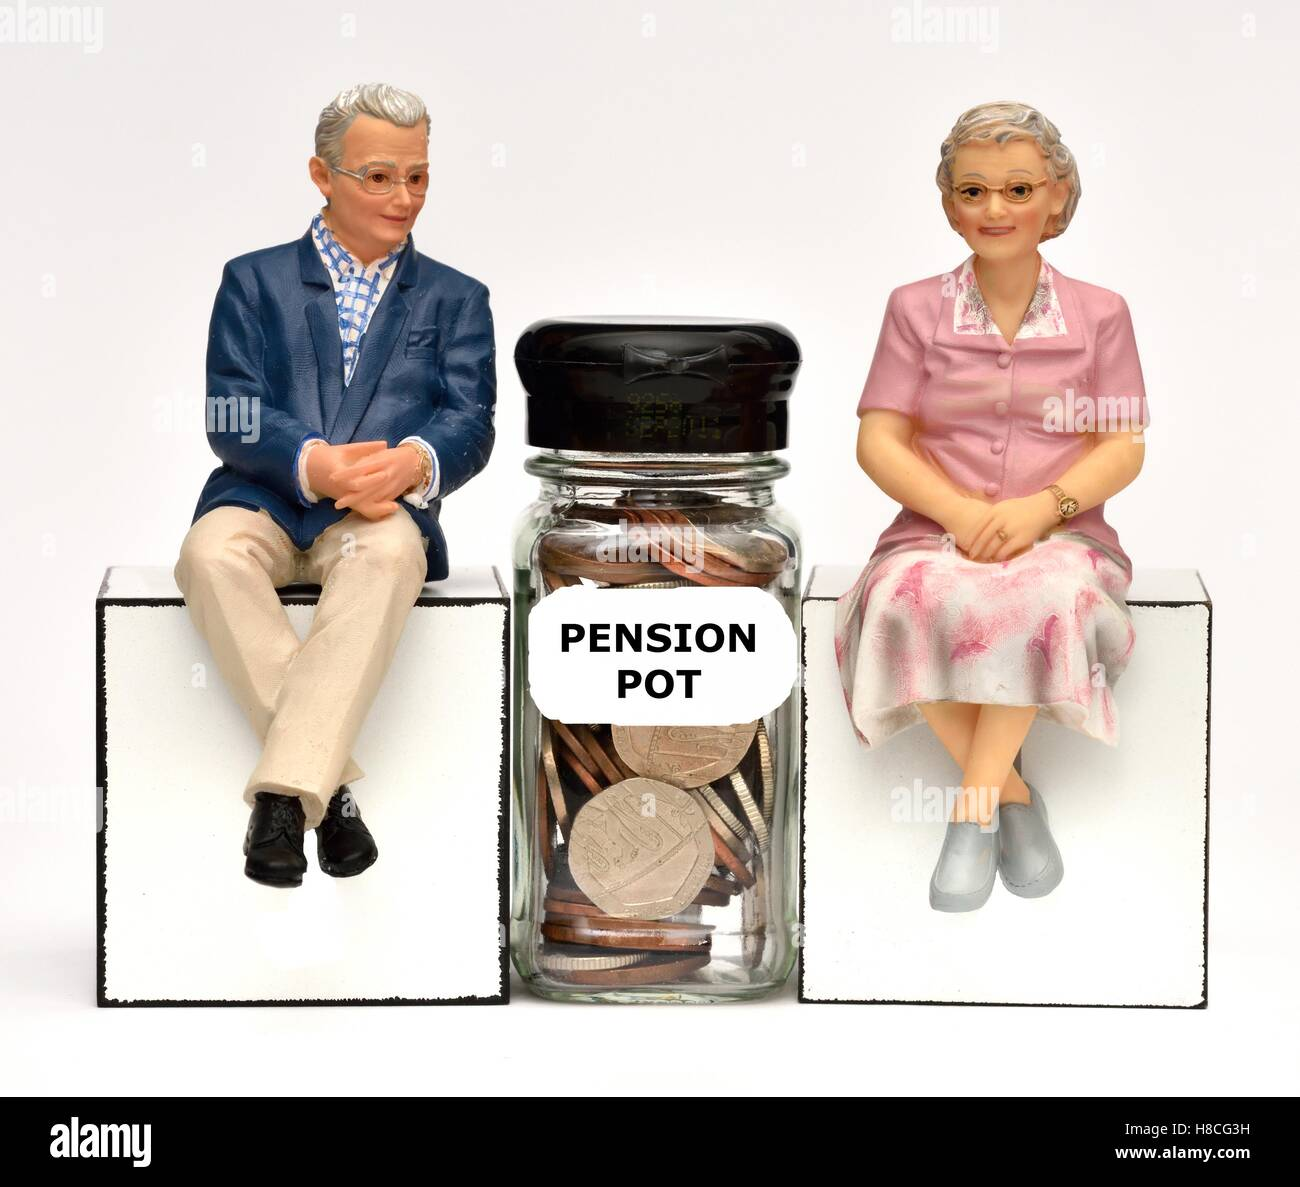 Two pensioner figurines with a pension pot money jar. - Stock Image